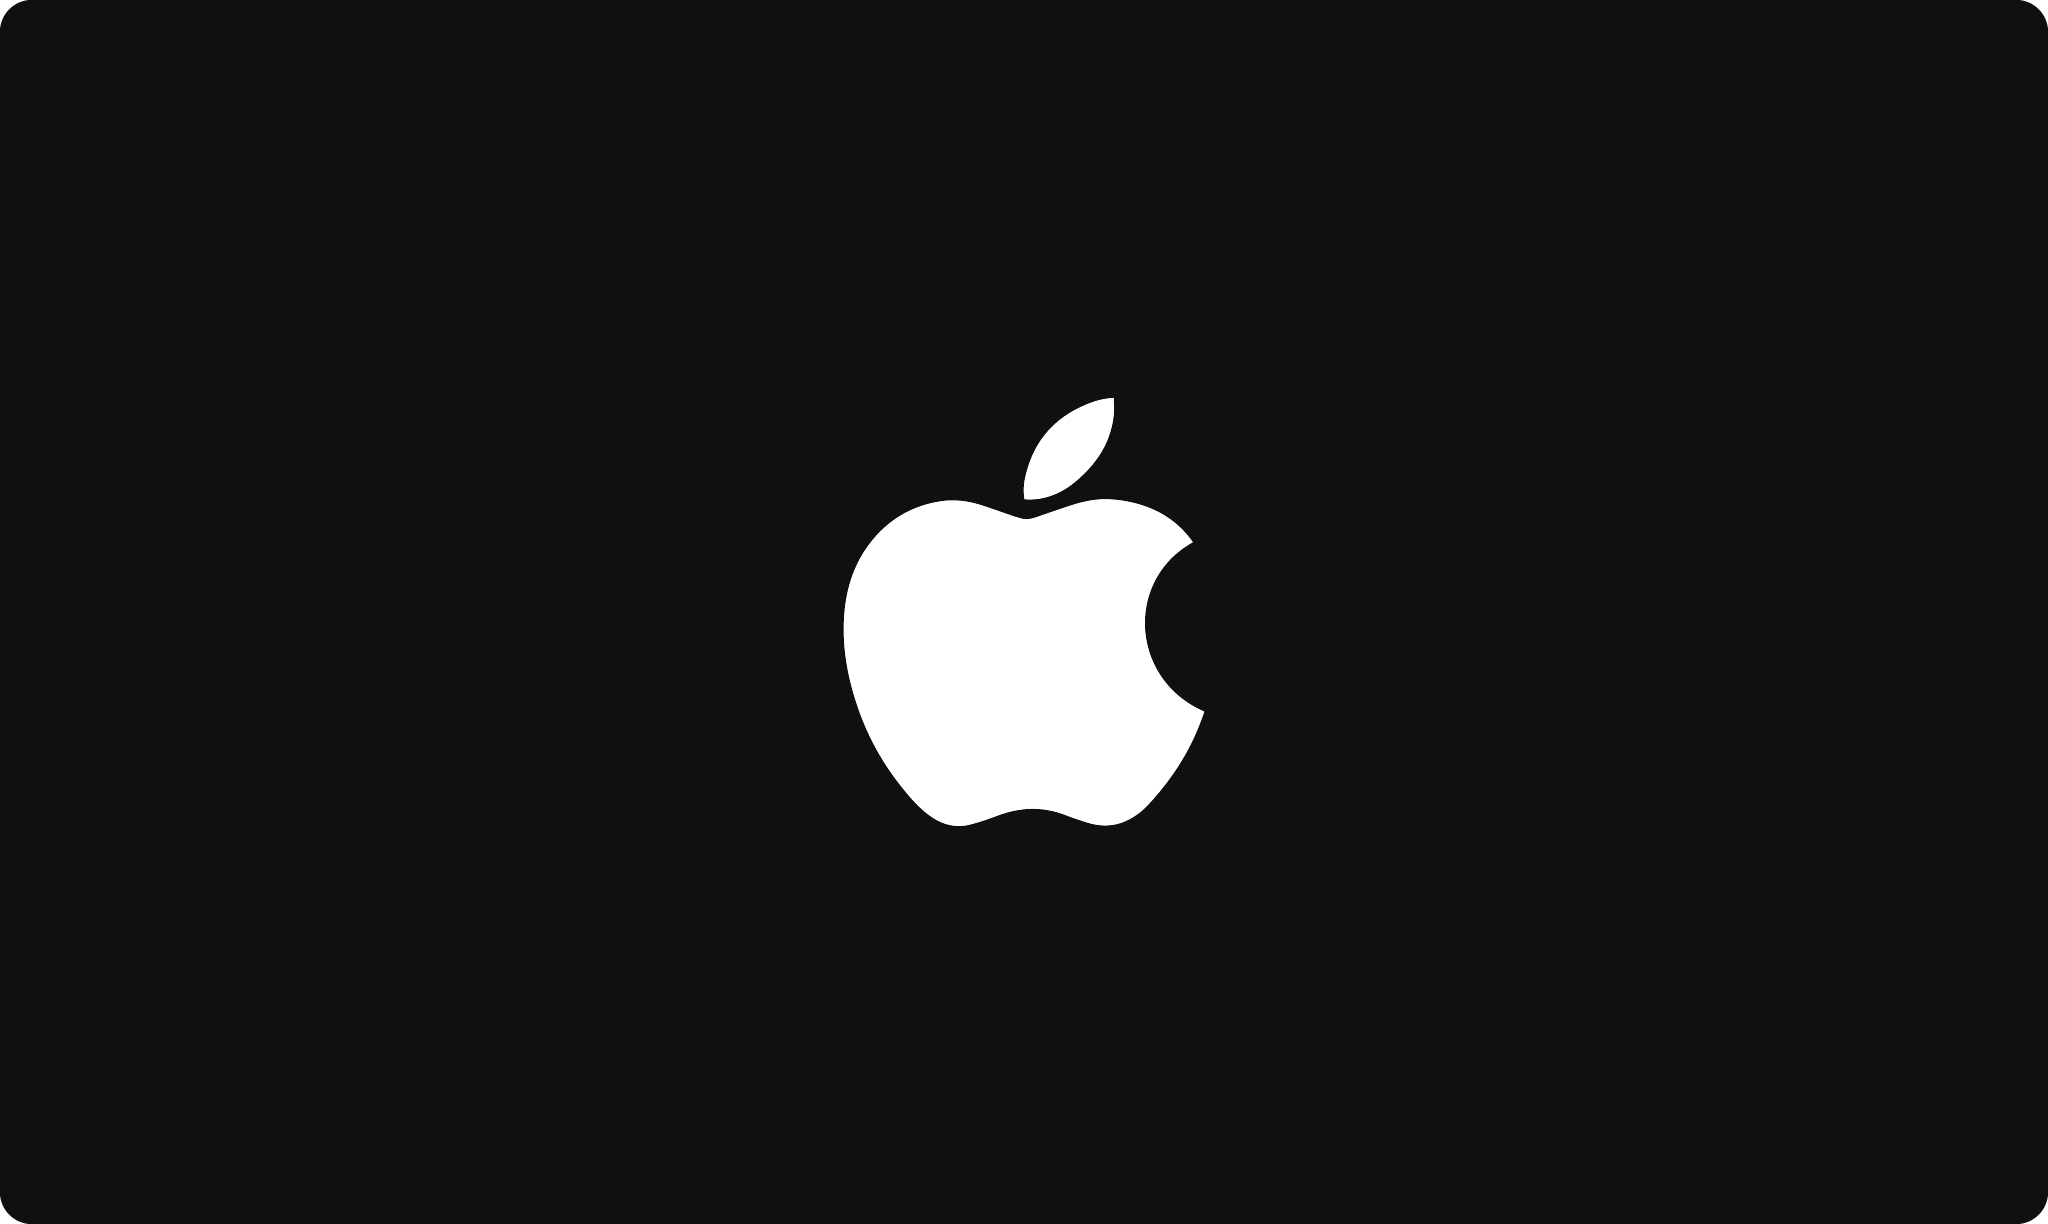 Apple's iconic logo in black and white